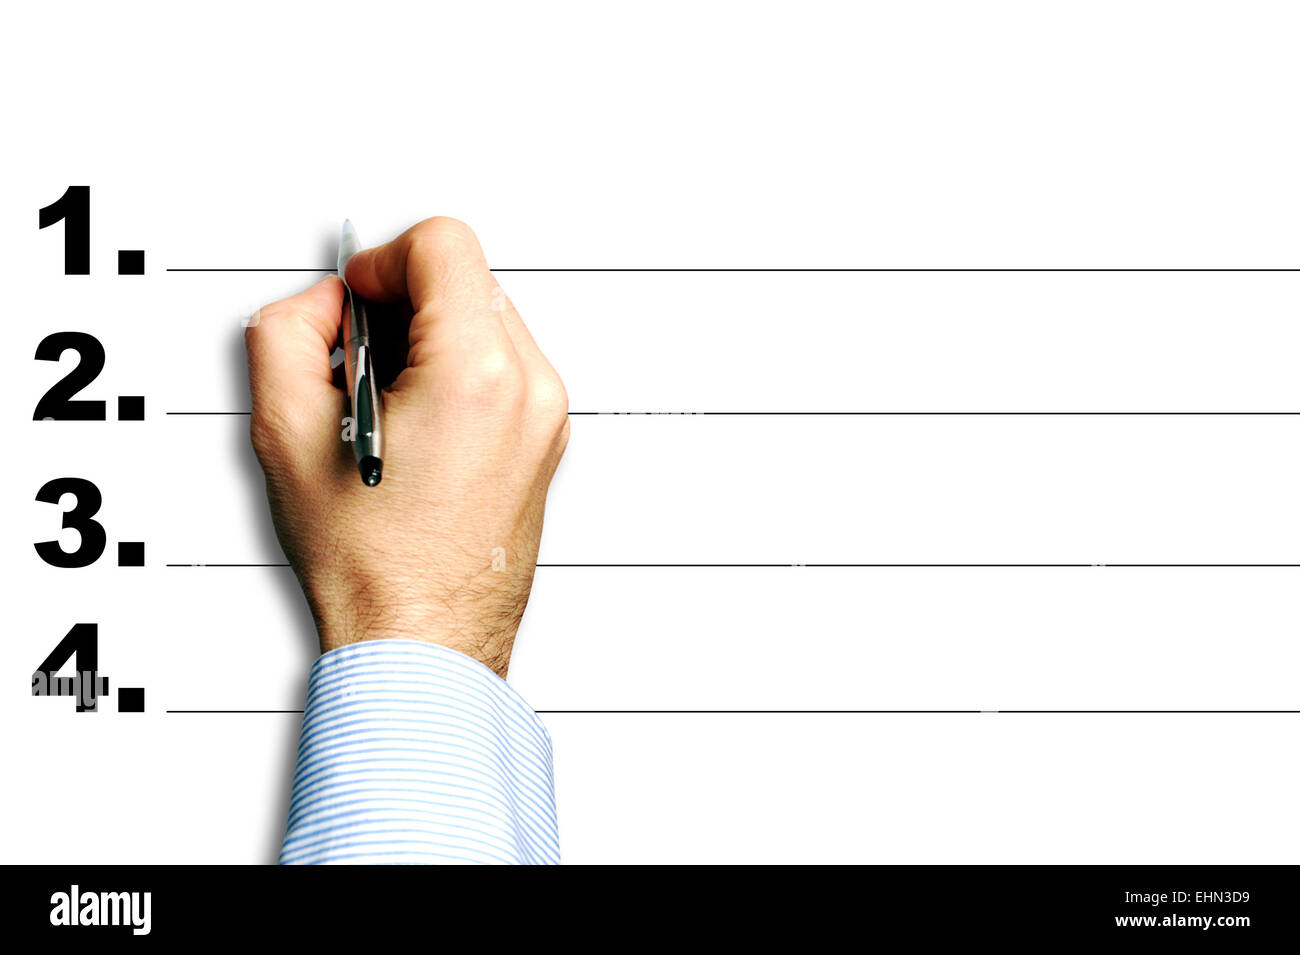 hand in process of writing notes on a numbered list - Stock Image